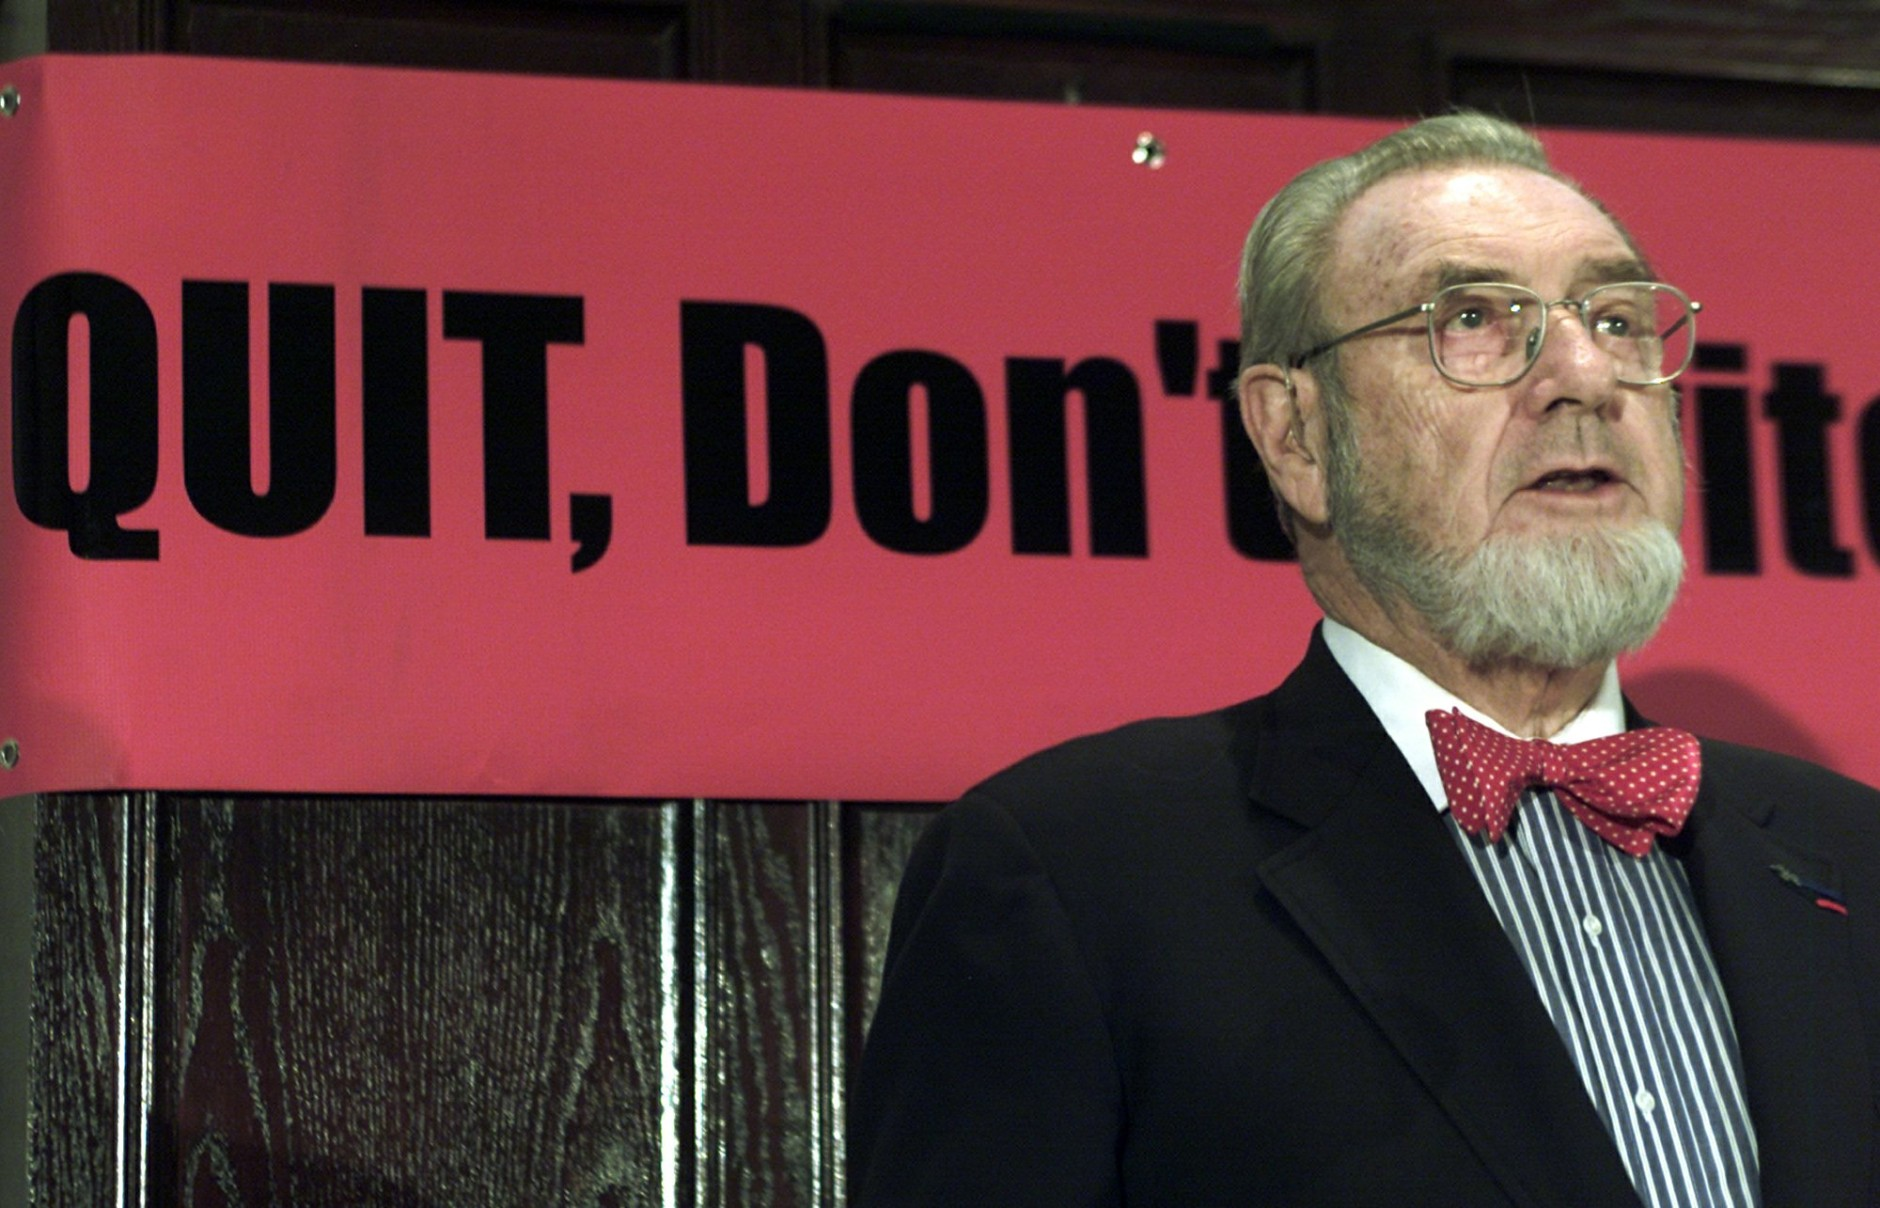 """Former Surgeon General C.Everett Koop meets reporters at the National Press Club in Washington Tuesday, Nov. 27, 2001 to discuss an National Cancer Institute report that says that people who believe they are reducing their risk of getting smoking-related diseases by using """"low-tar"""" or light cigarettes are wrong. (AP Photo/Joe Marquette)"""